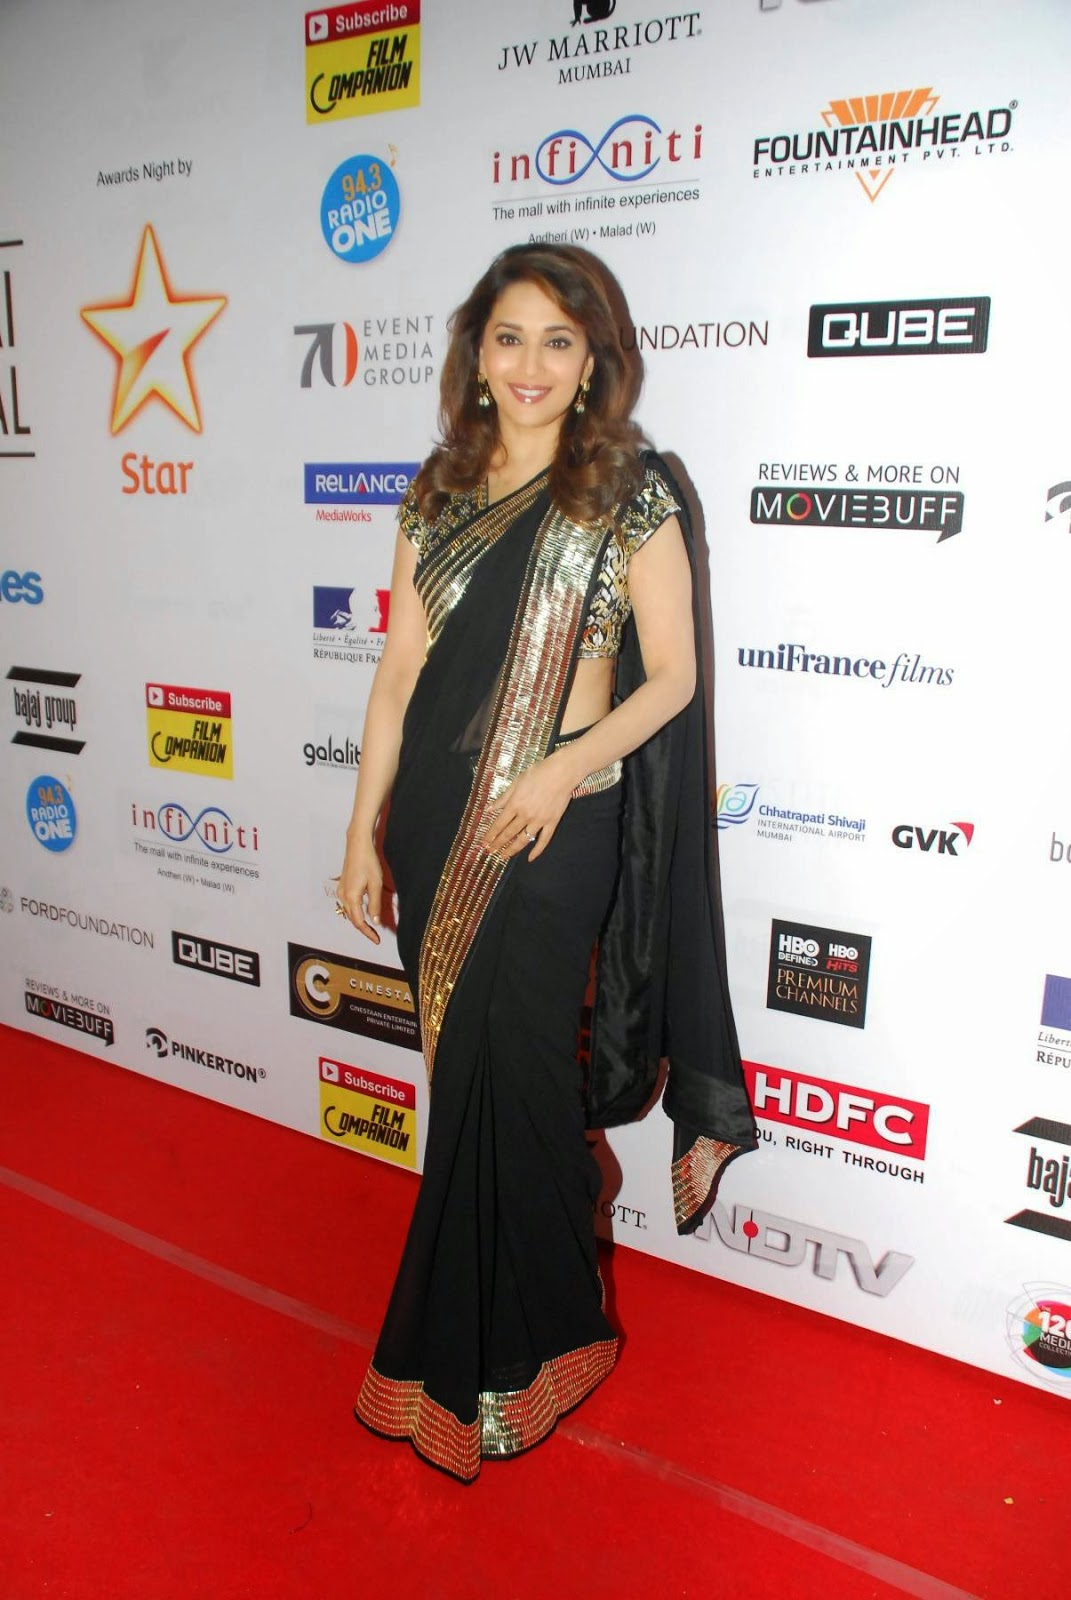 Glamorous Madhuri Dixit Photos In Black Saree At Film Festival